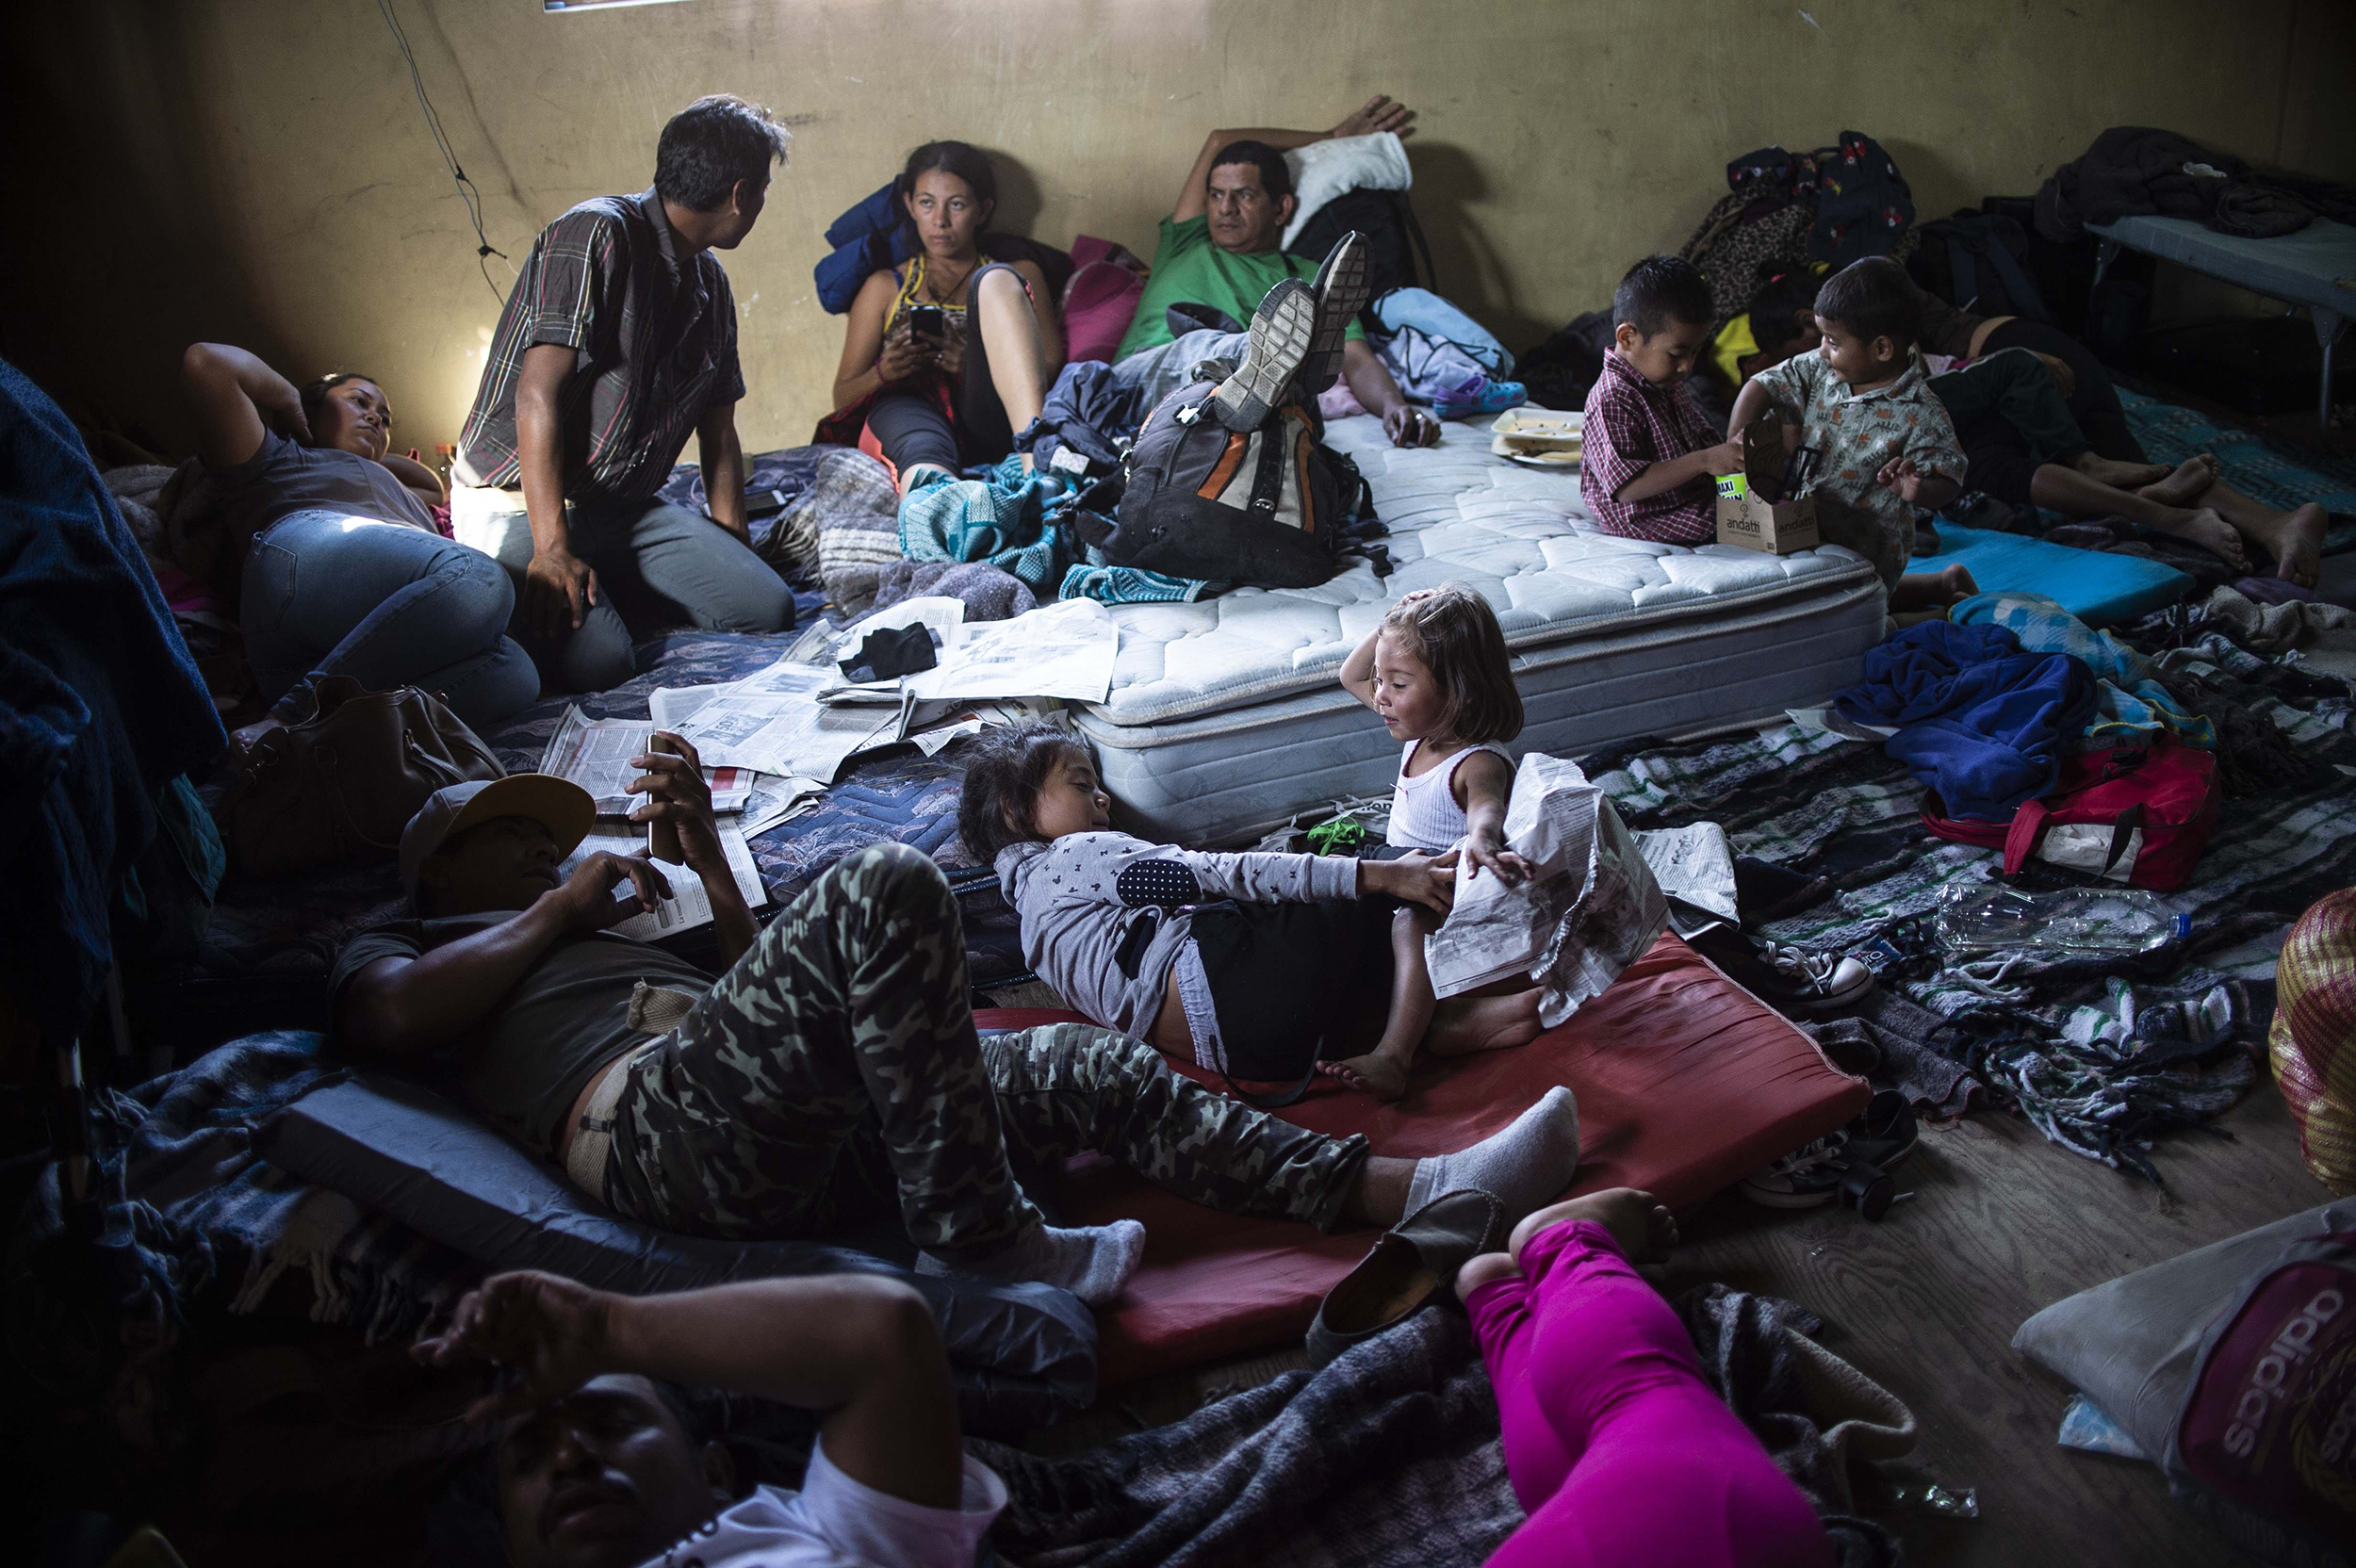 nbcnews.com - Migrants in Tijuana, Mexico, are not being greeted with open arms